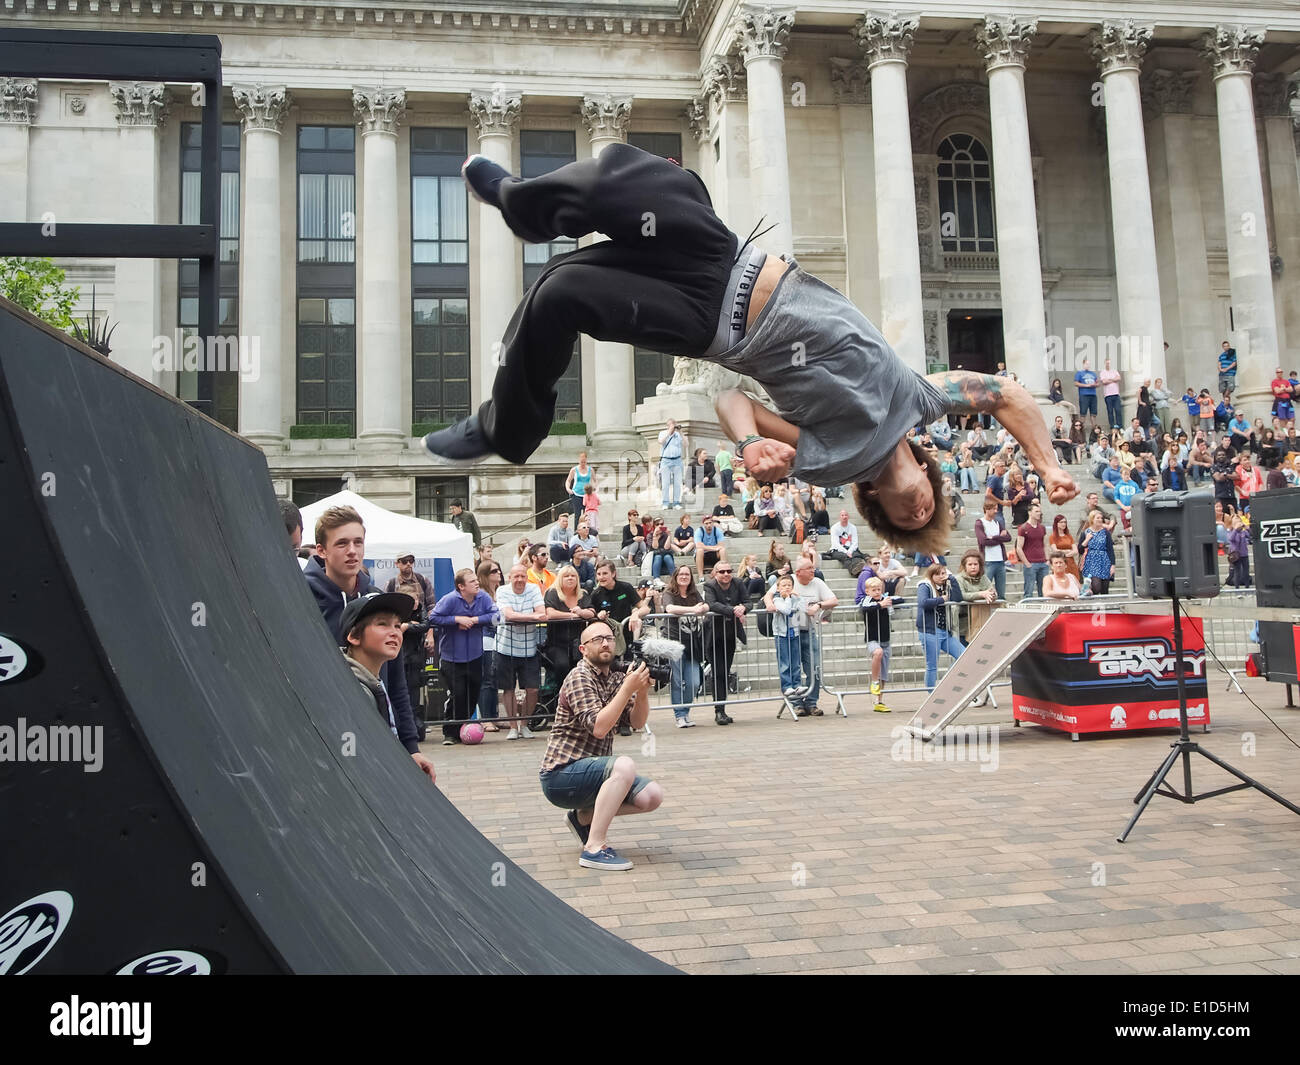 A free runner uses a quarter pipe to flip himself during the Portsmouth street games 2014 - Stock Image